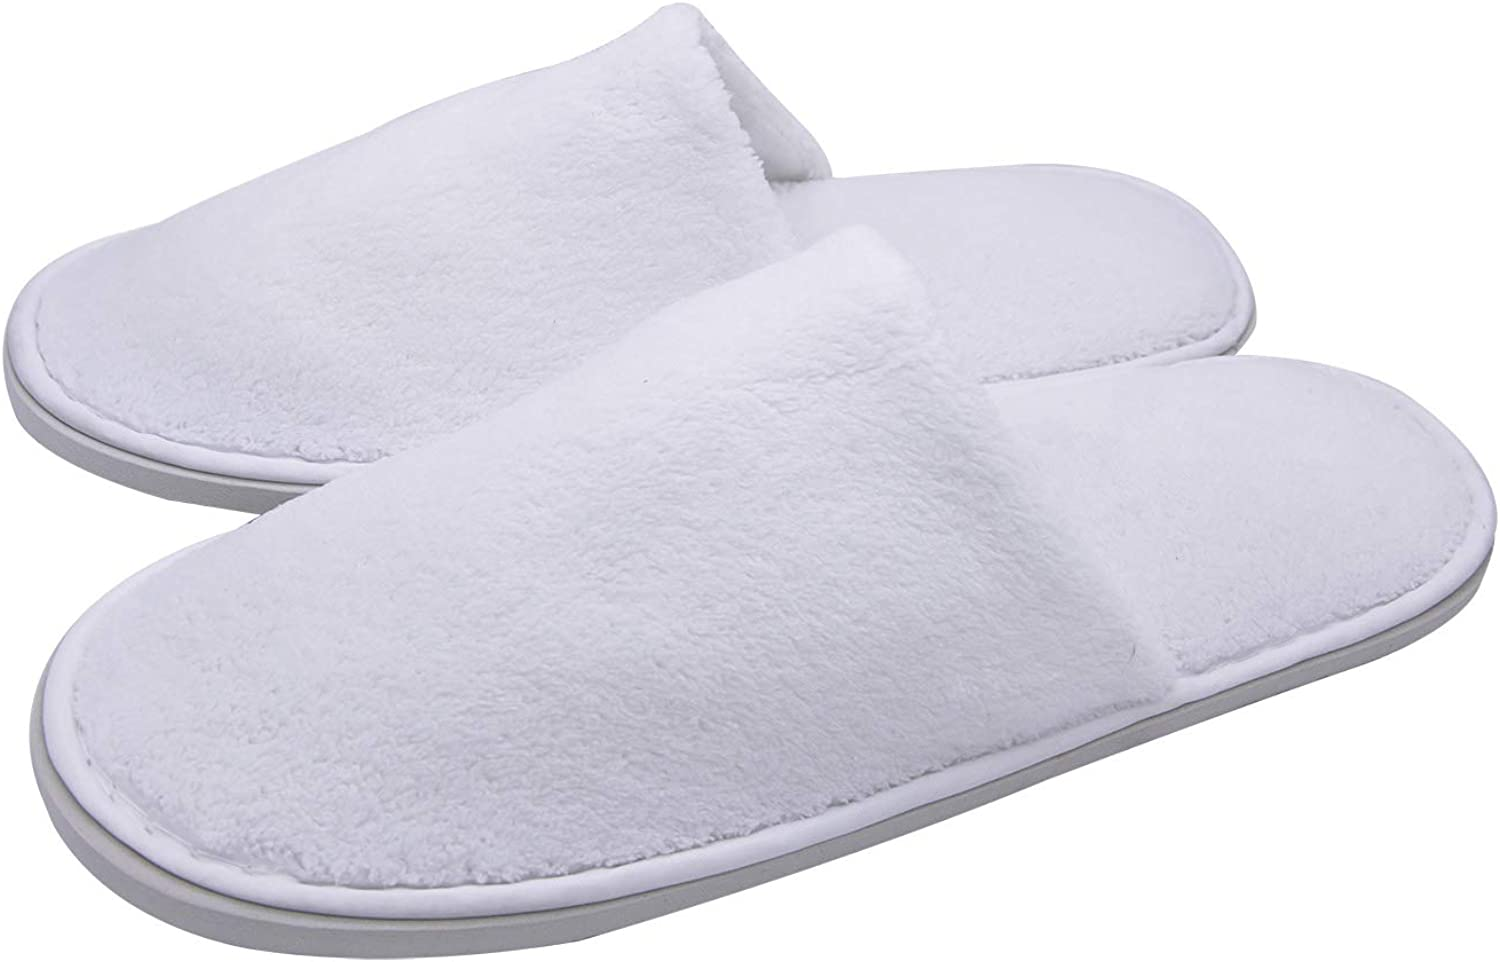 FEIYABDF 10 Pairs of Disposable and Soft Spa depot Surprise price Slippers